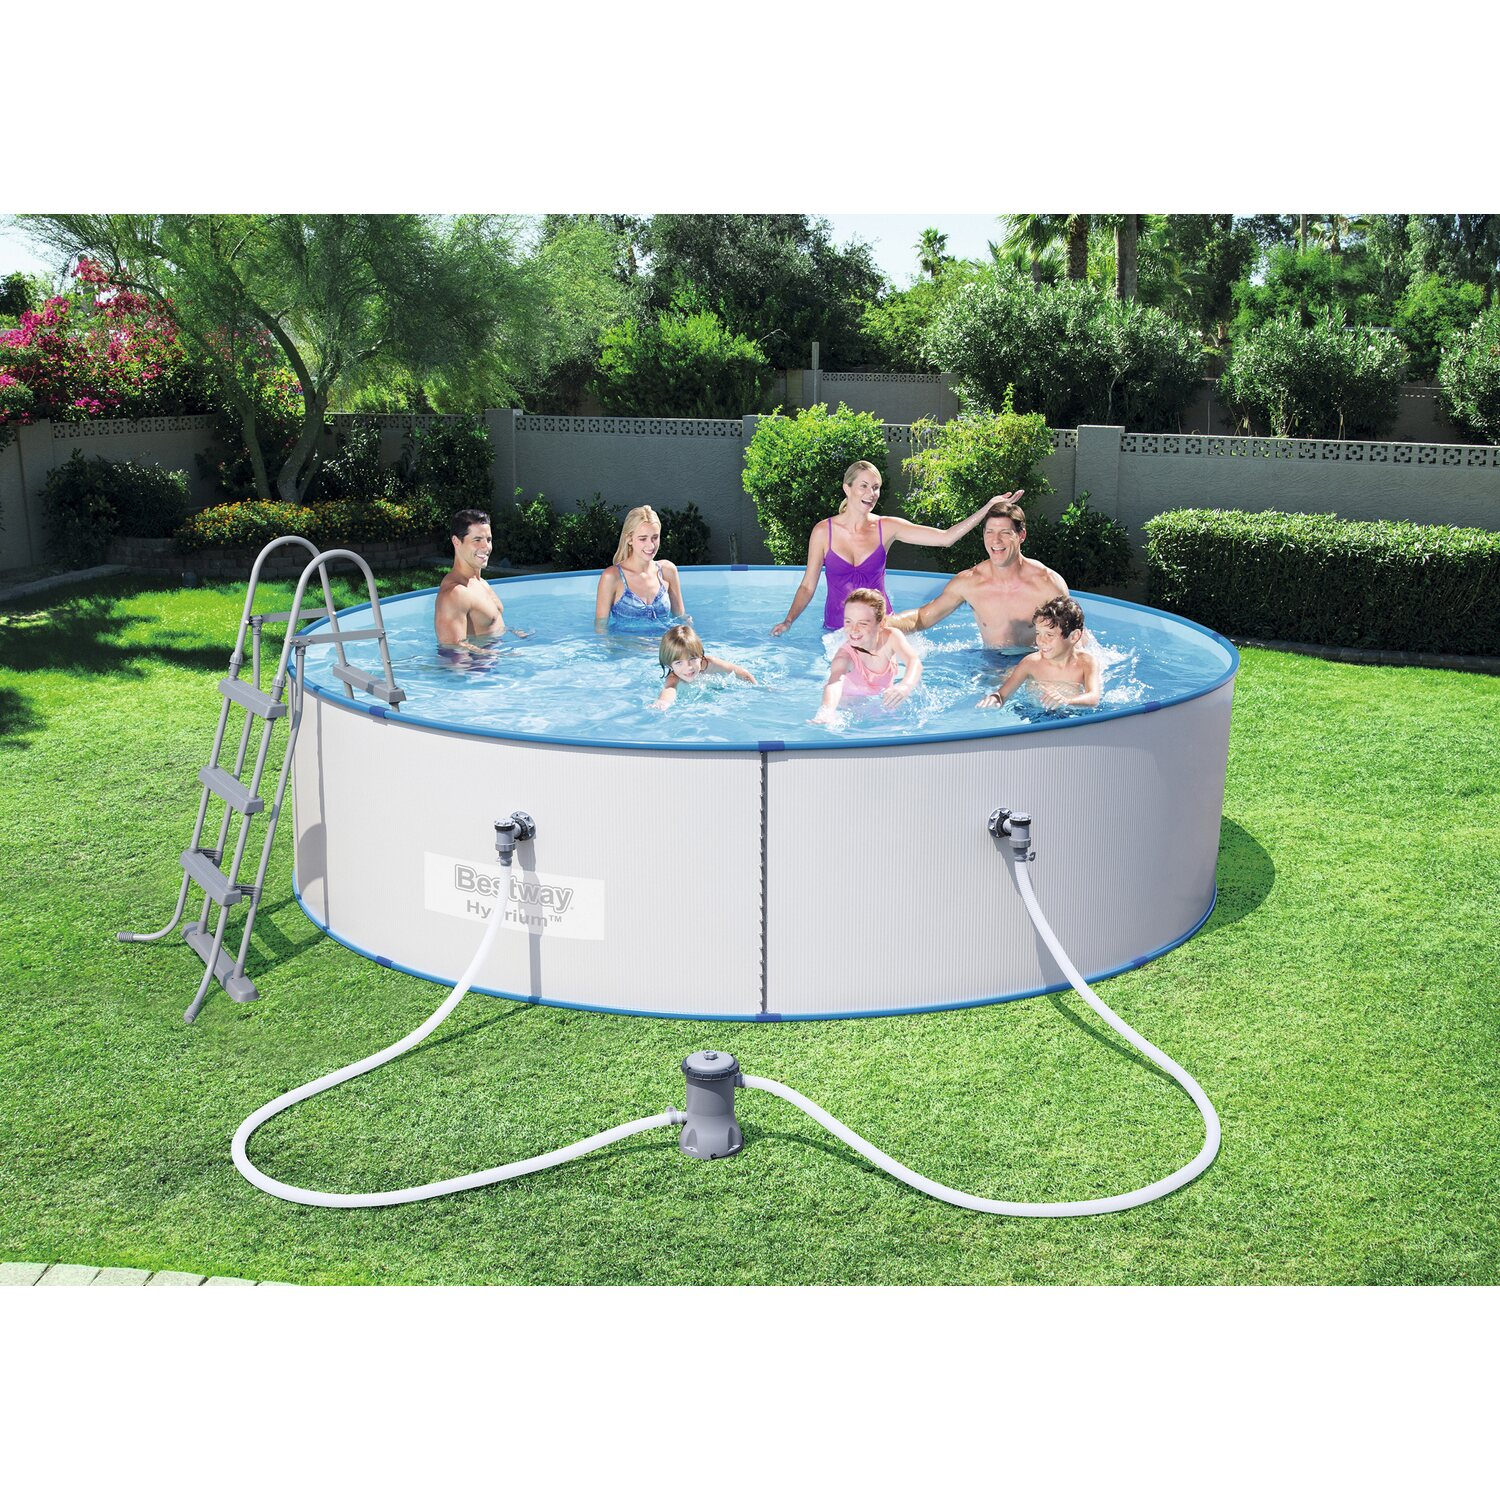 Bestway stahlwand pool set hydrium splasher 360 cm x 90 cm for Bestway pool obi